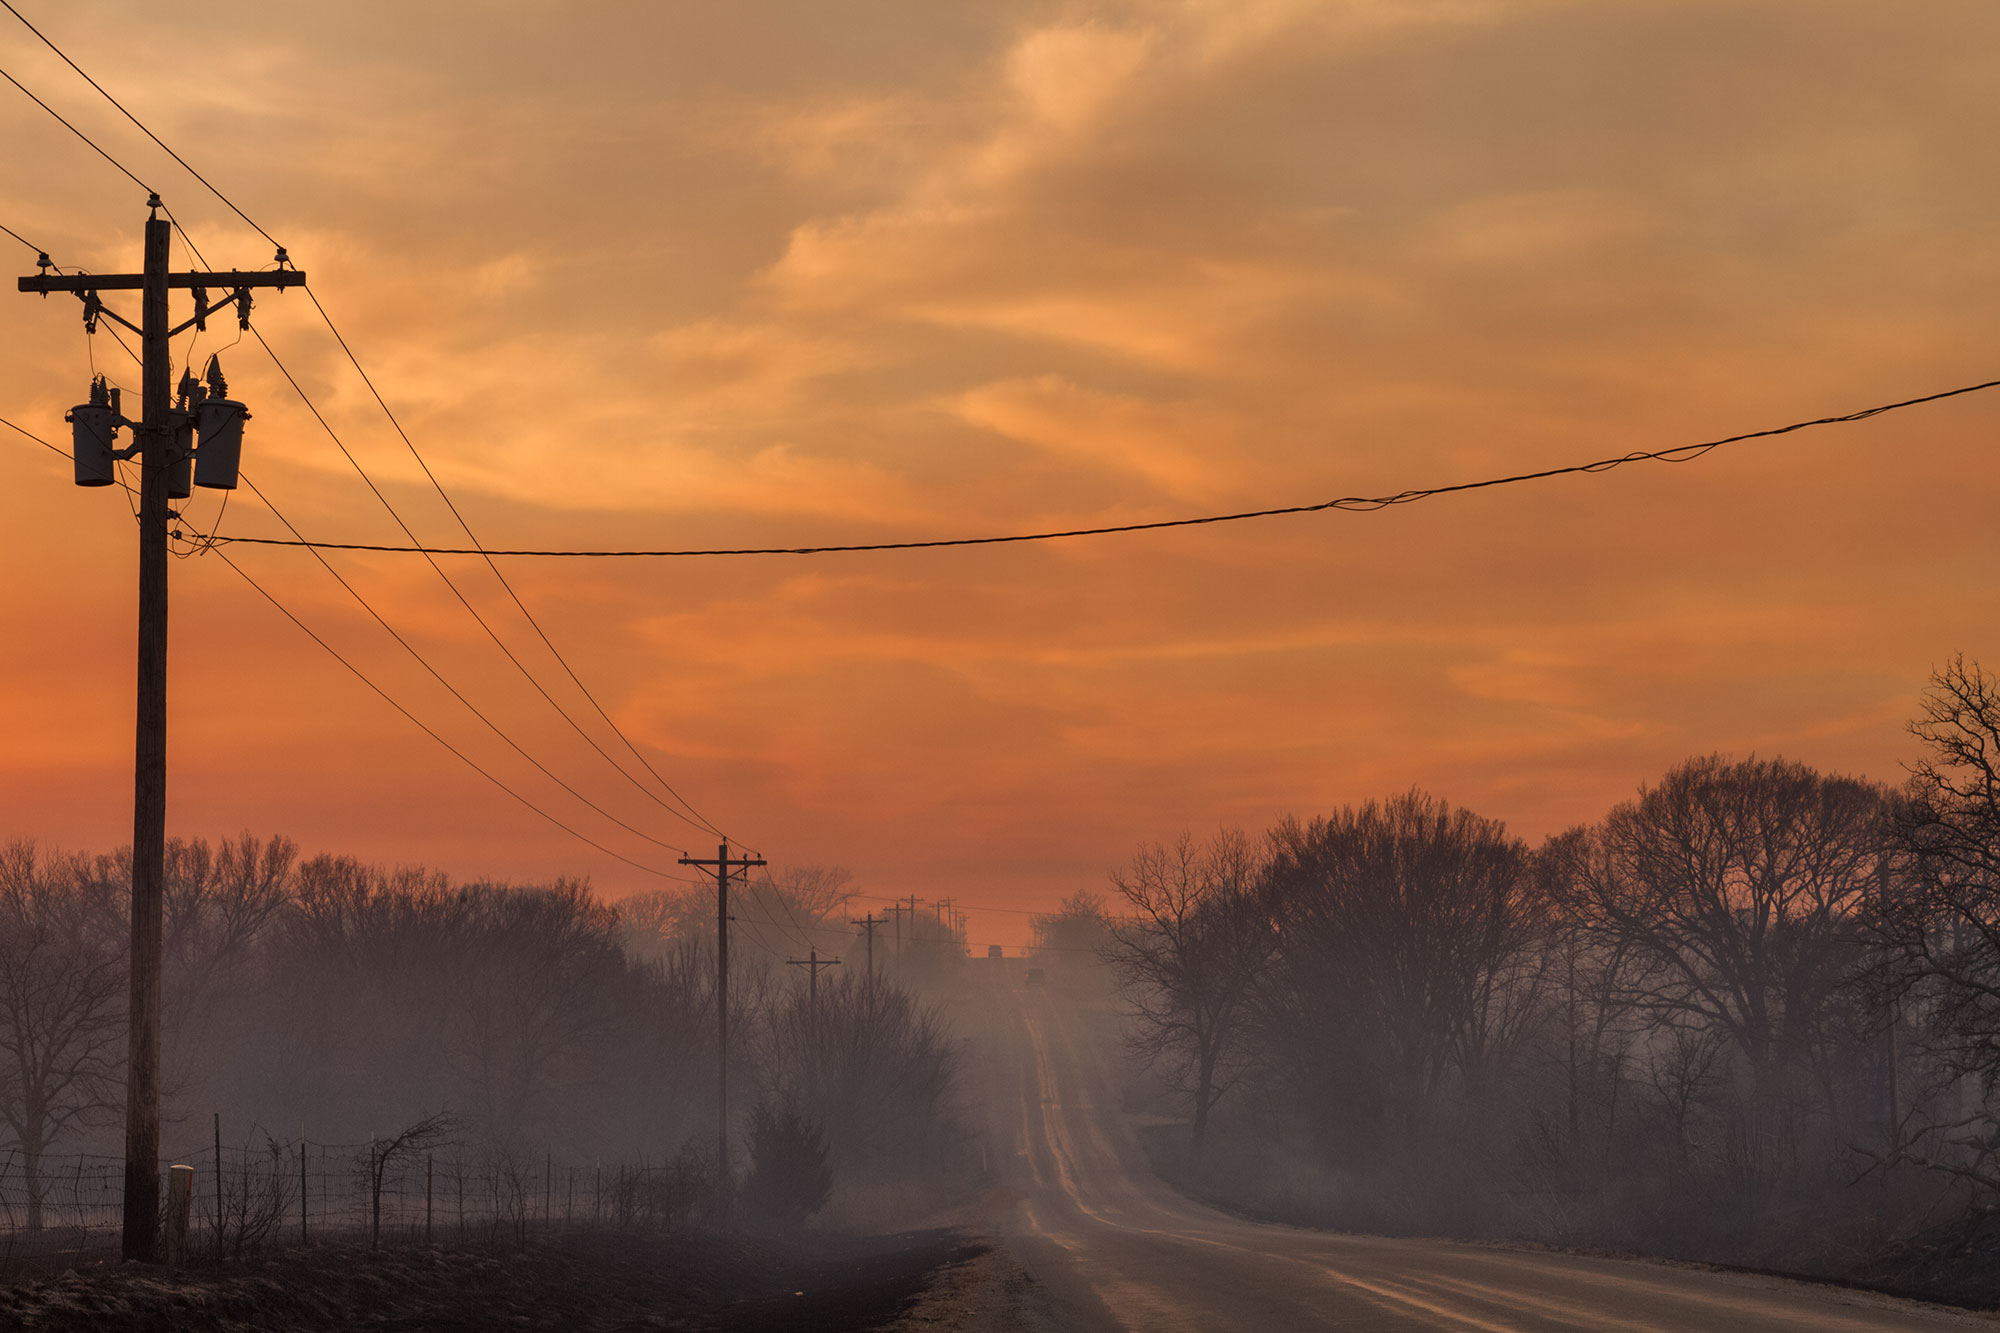 Smoke covers a rural Oklahoma road after a recent controlled burn.